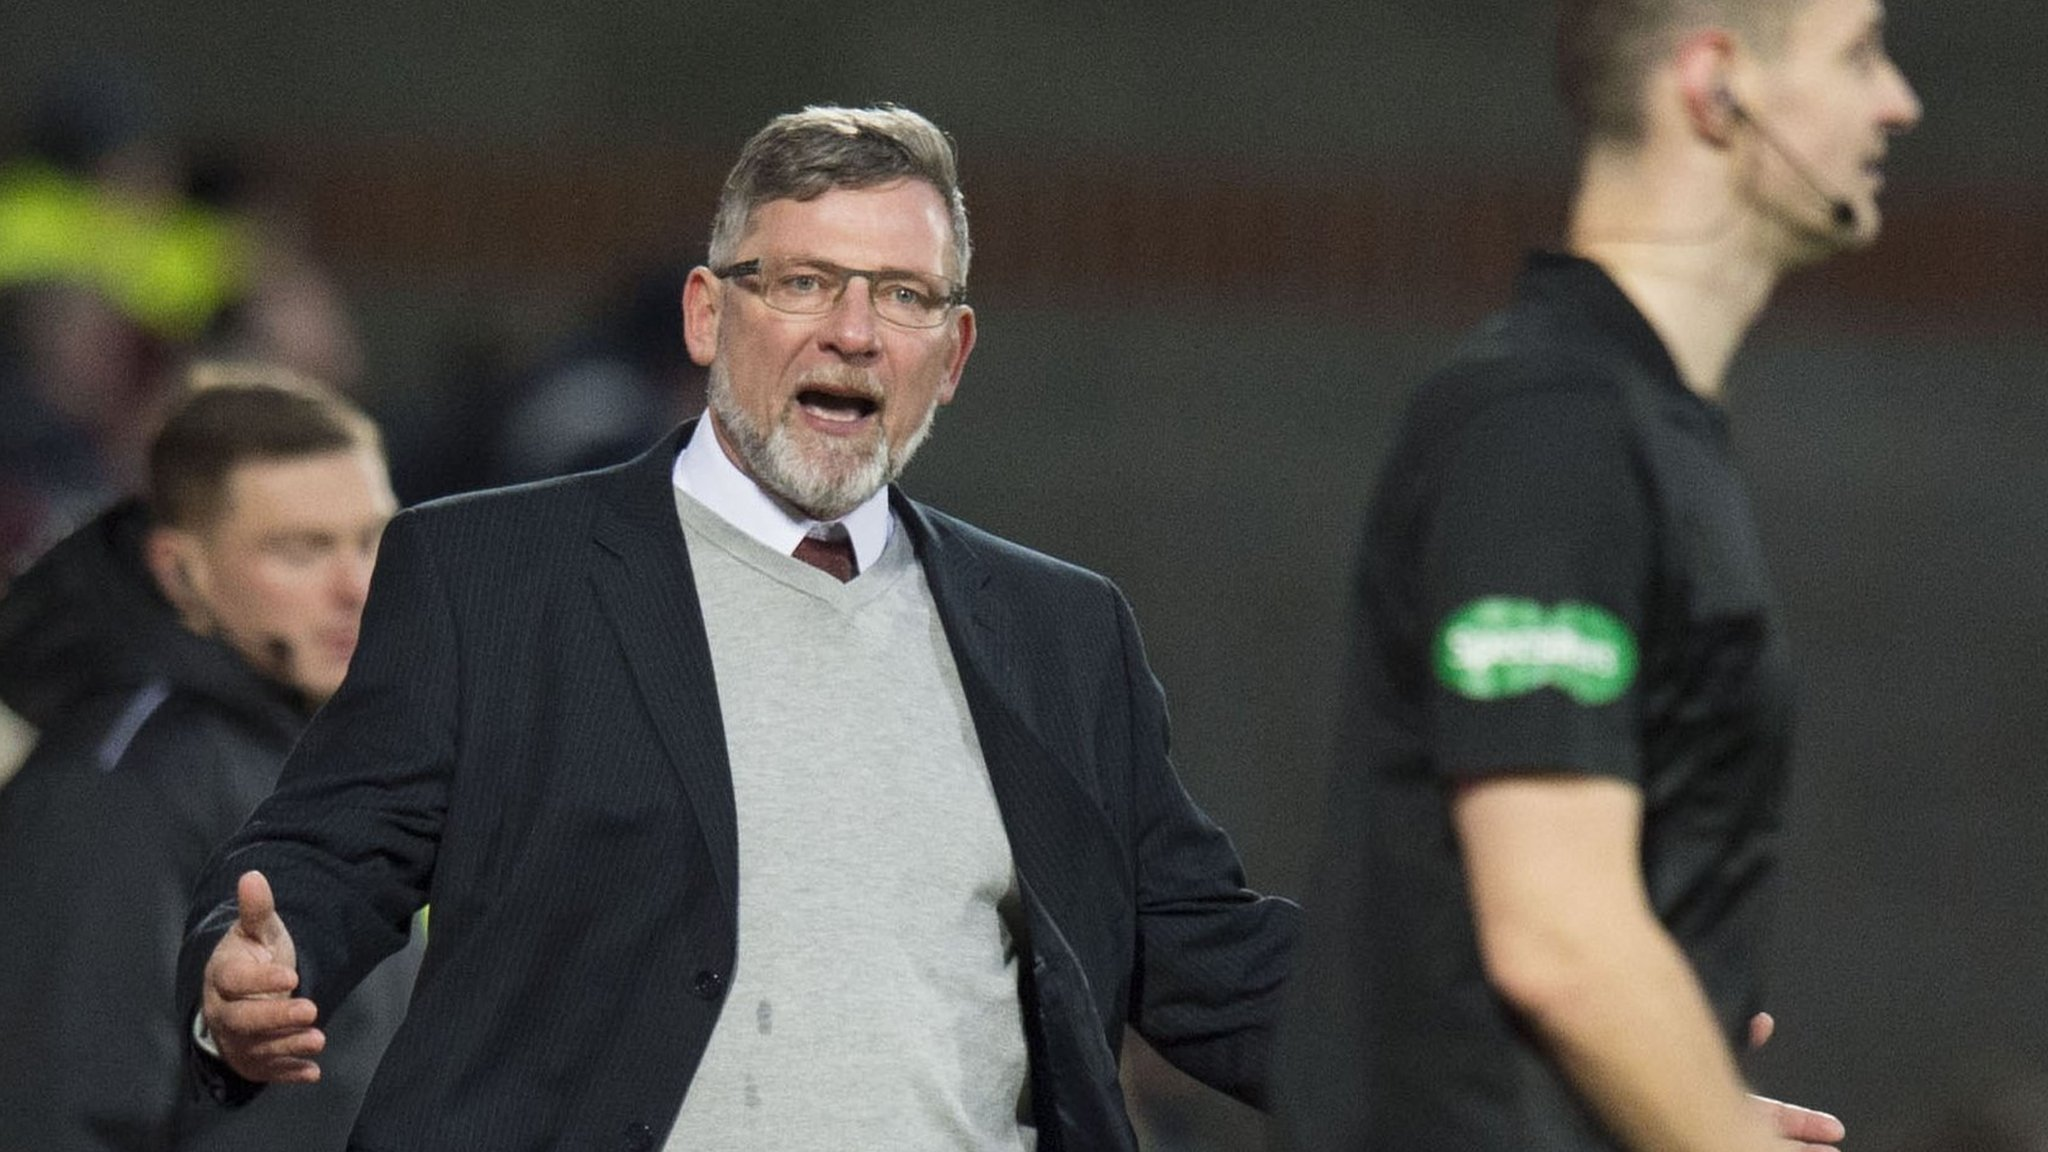 Hearts' Levein faces touchline ban for 'playing 12 men' comments